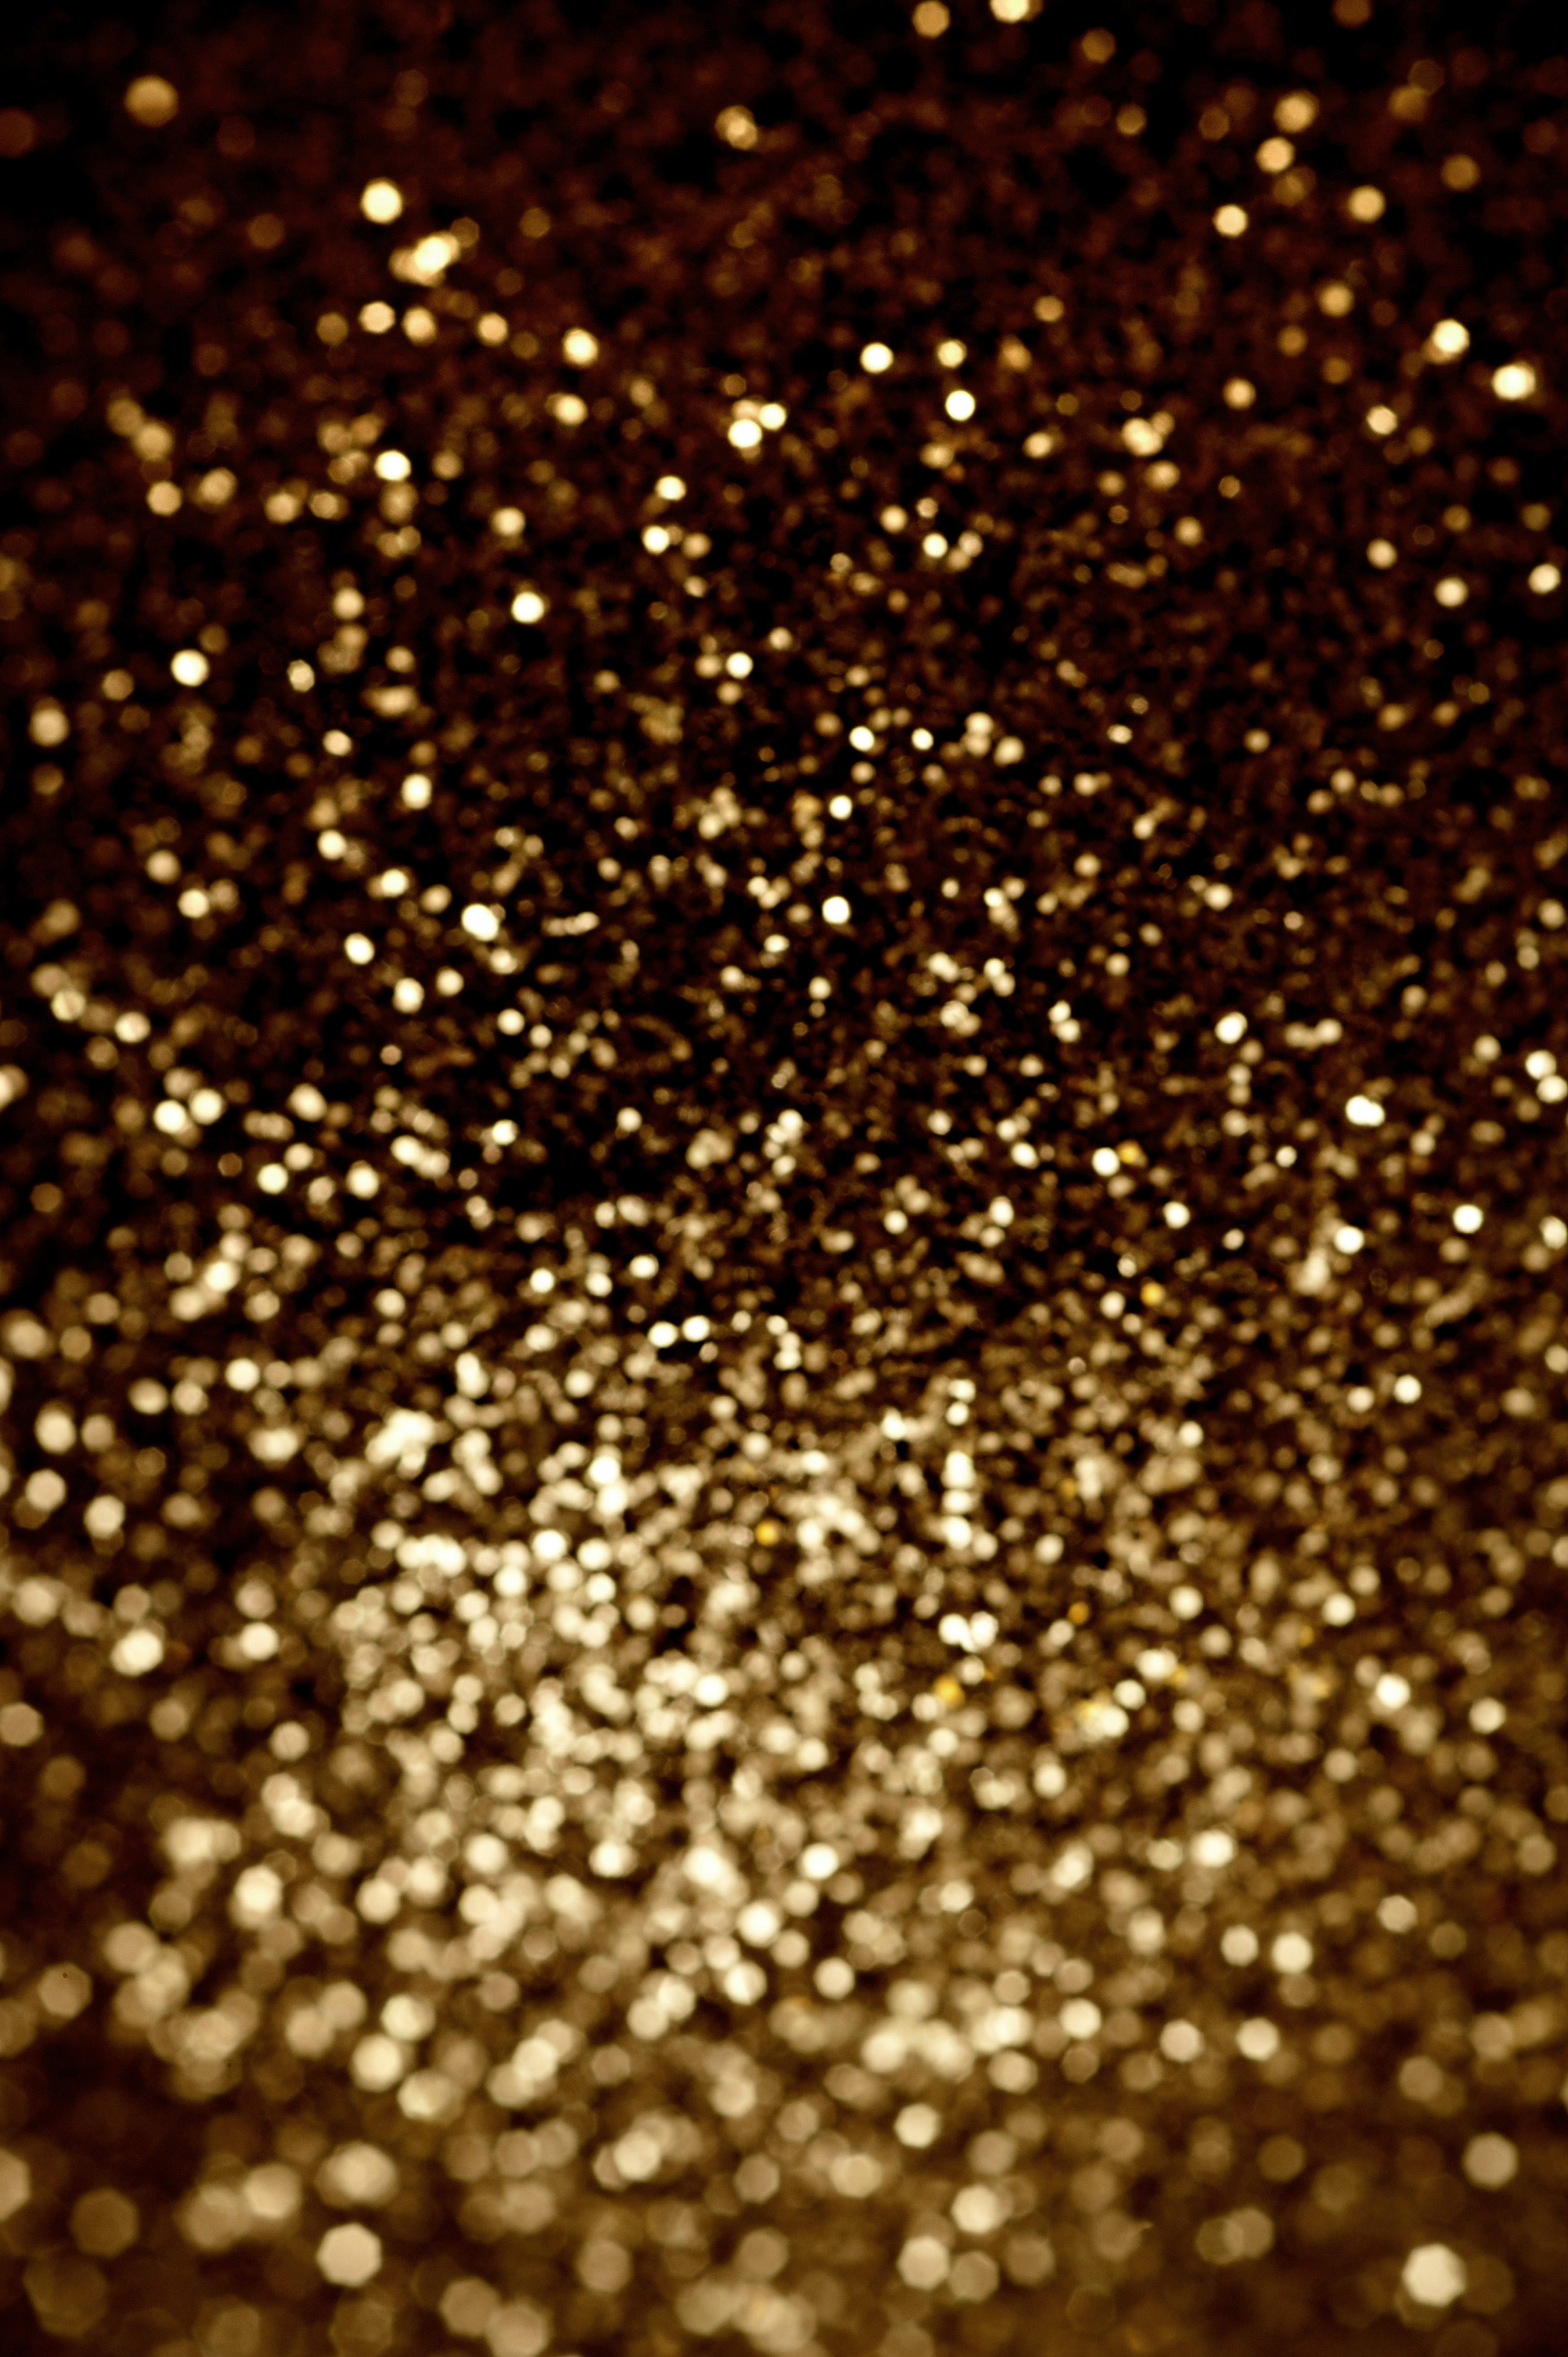 Full Frame Abstract Background of Festive Diffuse Gold Glitter